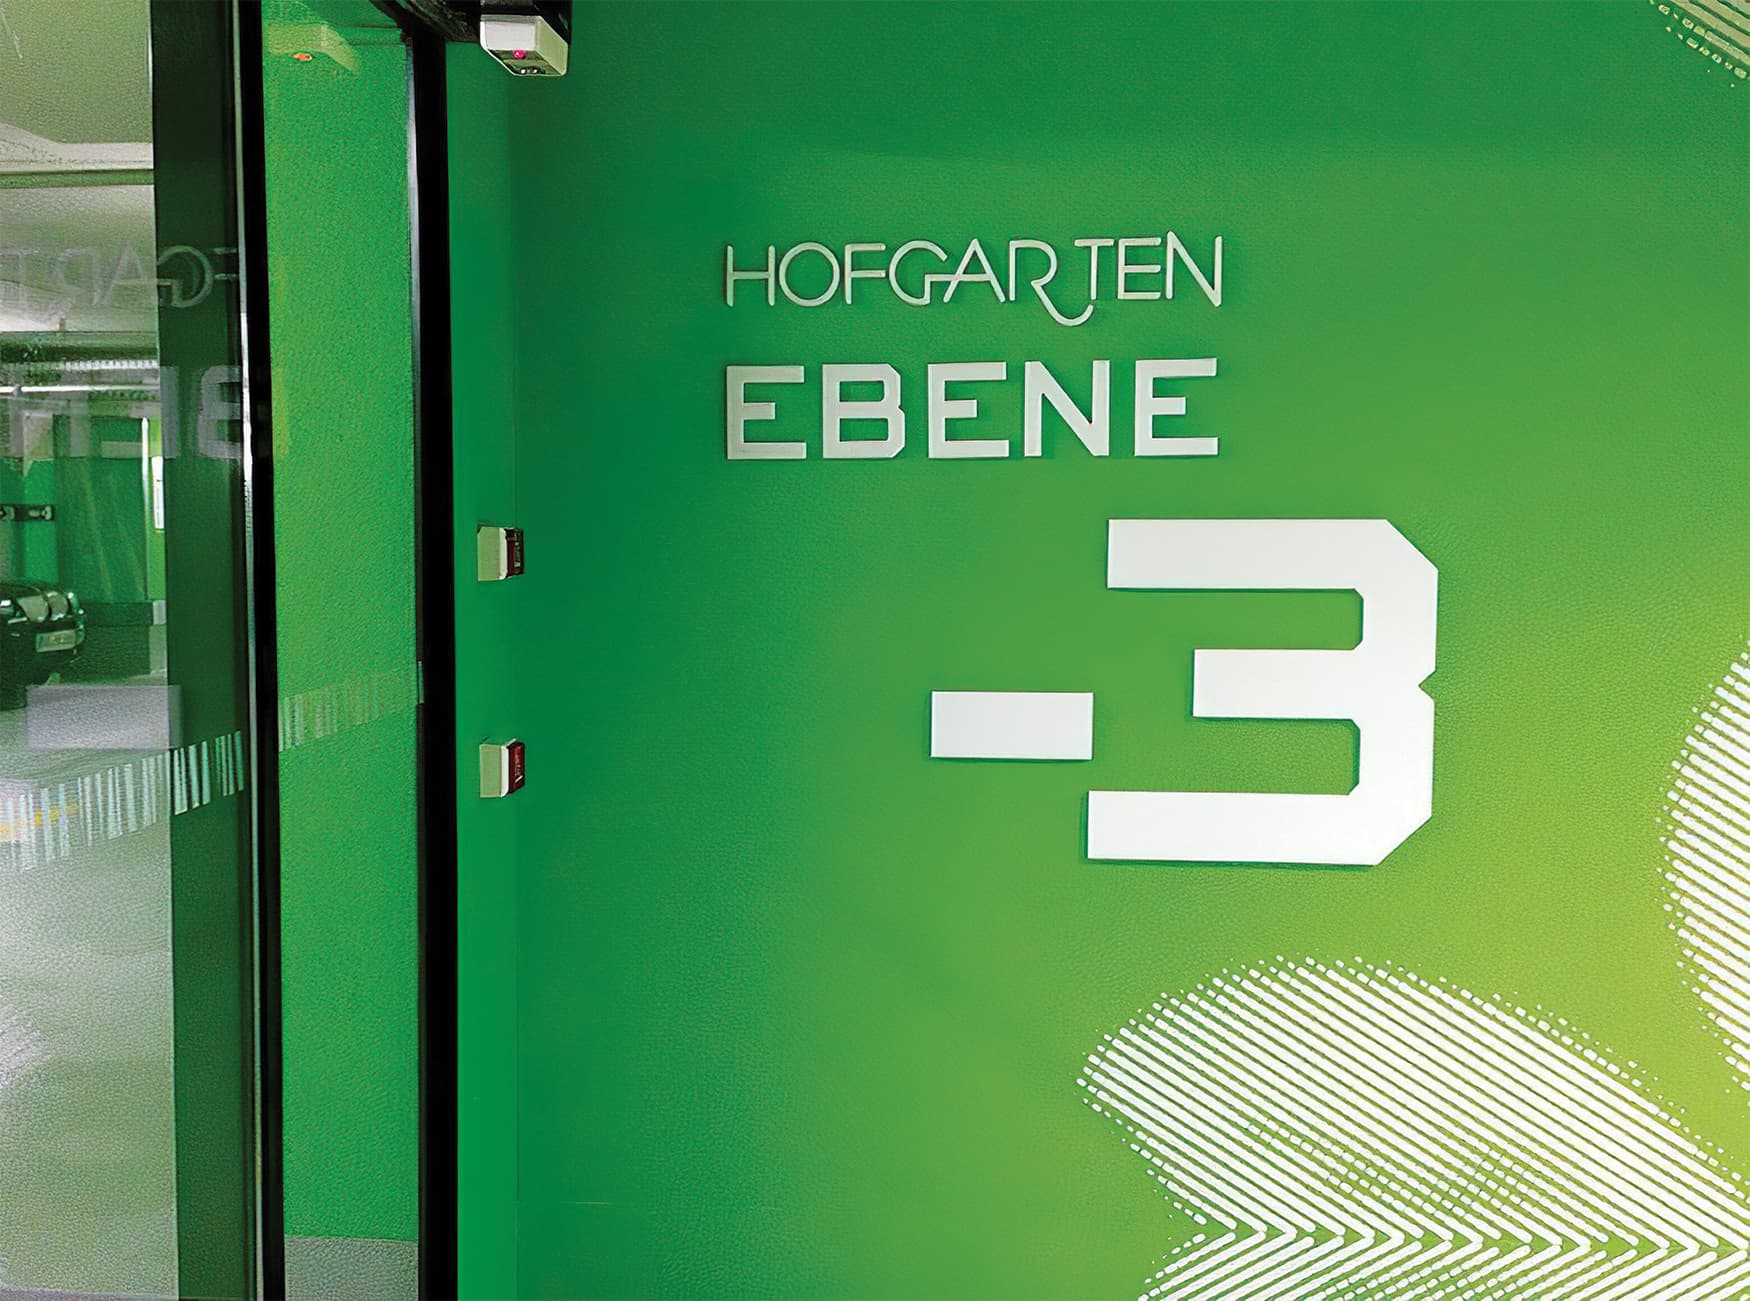 Hofgarten, a retail project in Solingen Germany, environmental graphics and graphic wayfinding design